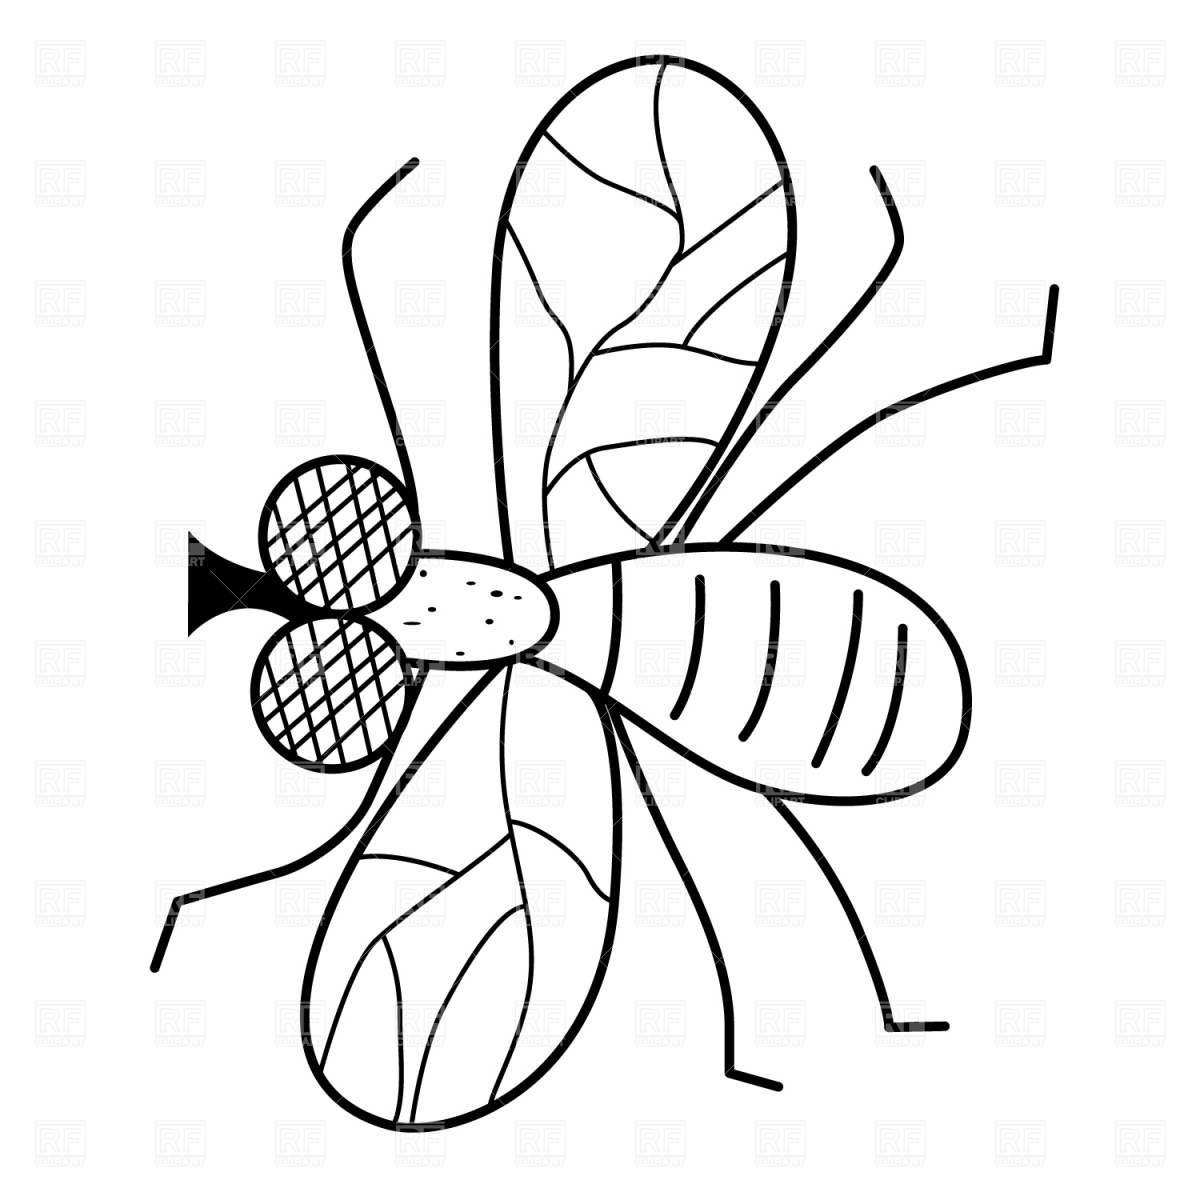 Fly clipart black and white » Clipart Station.